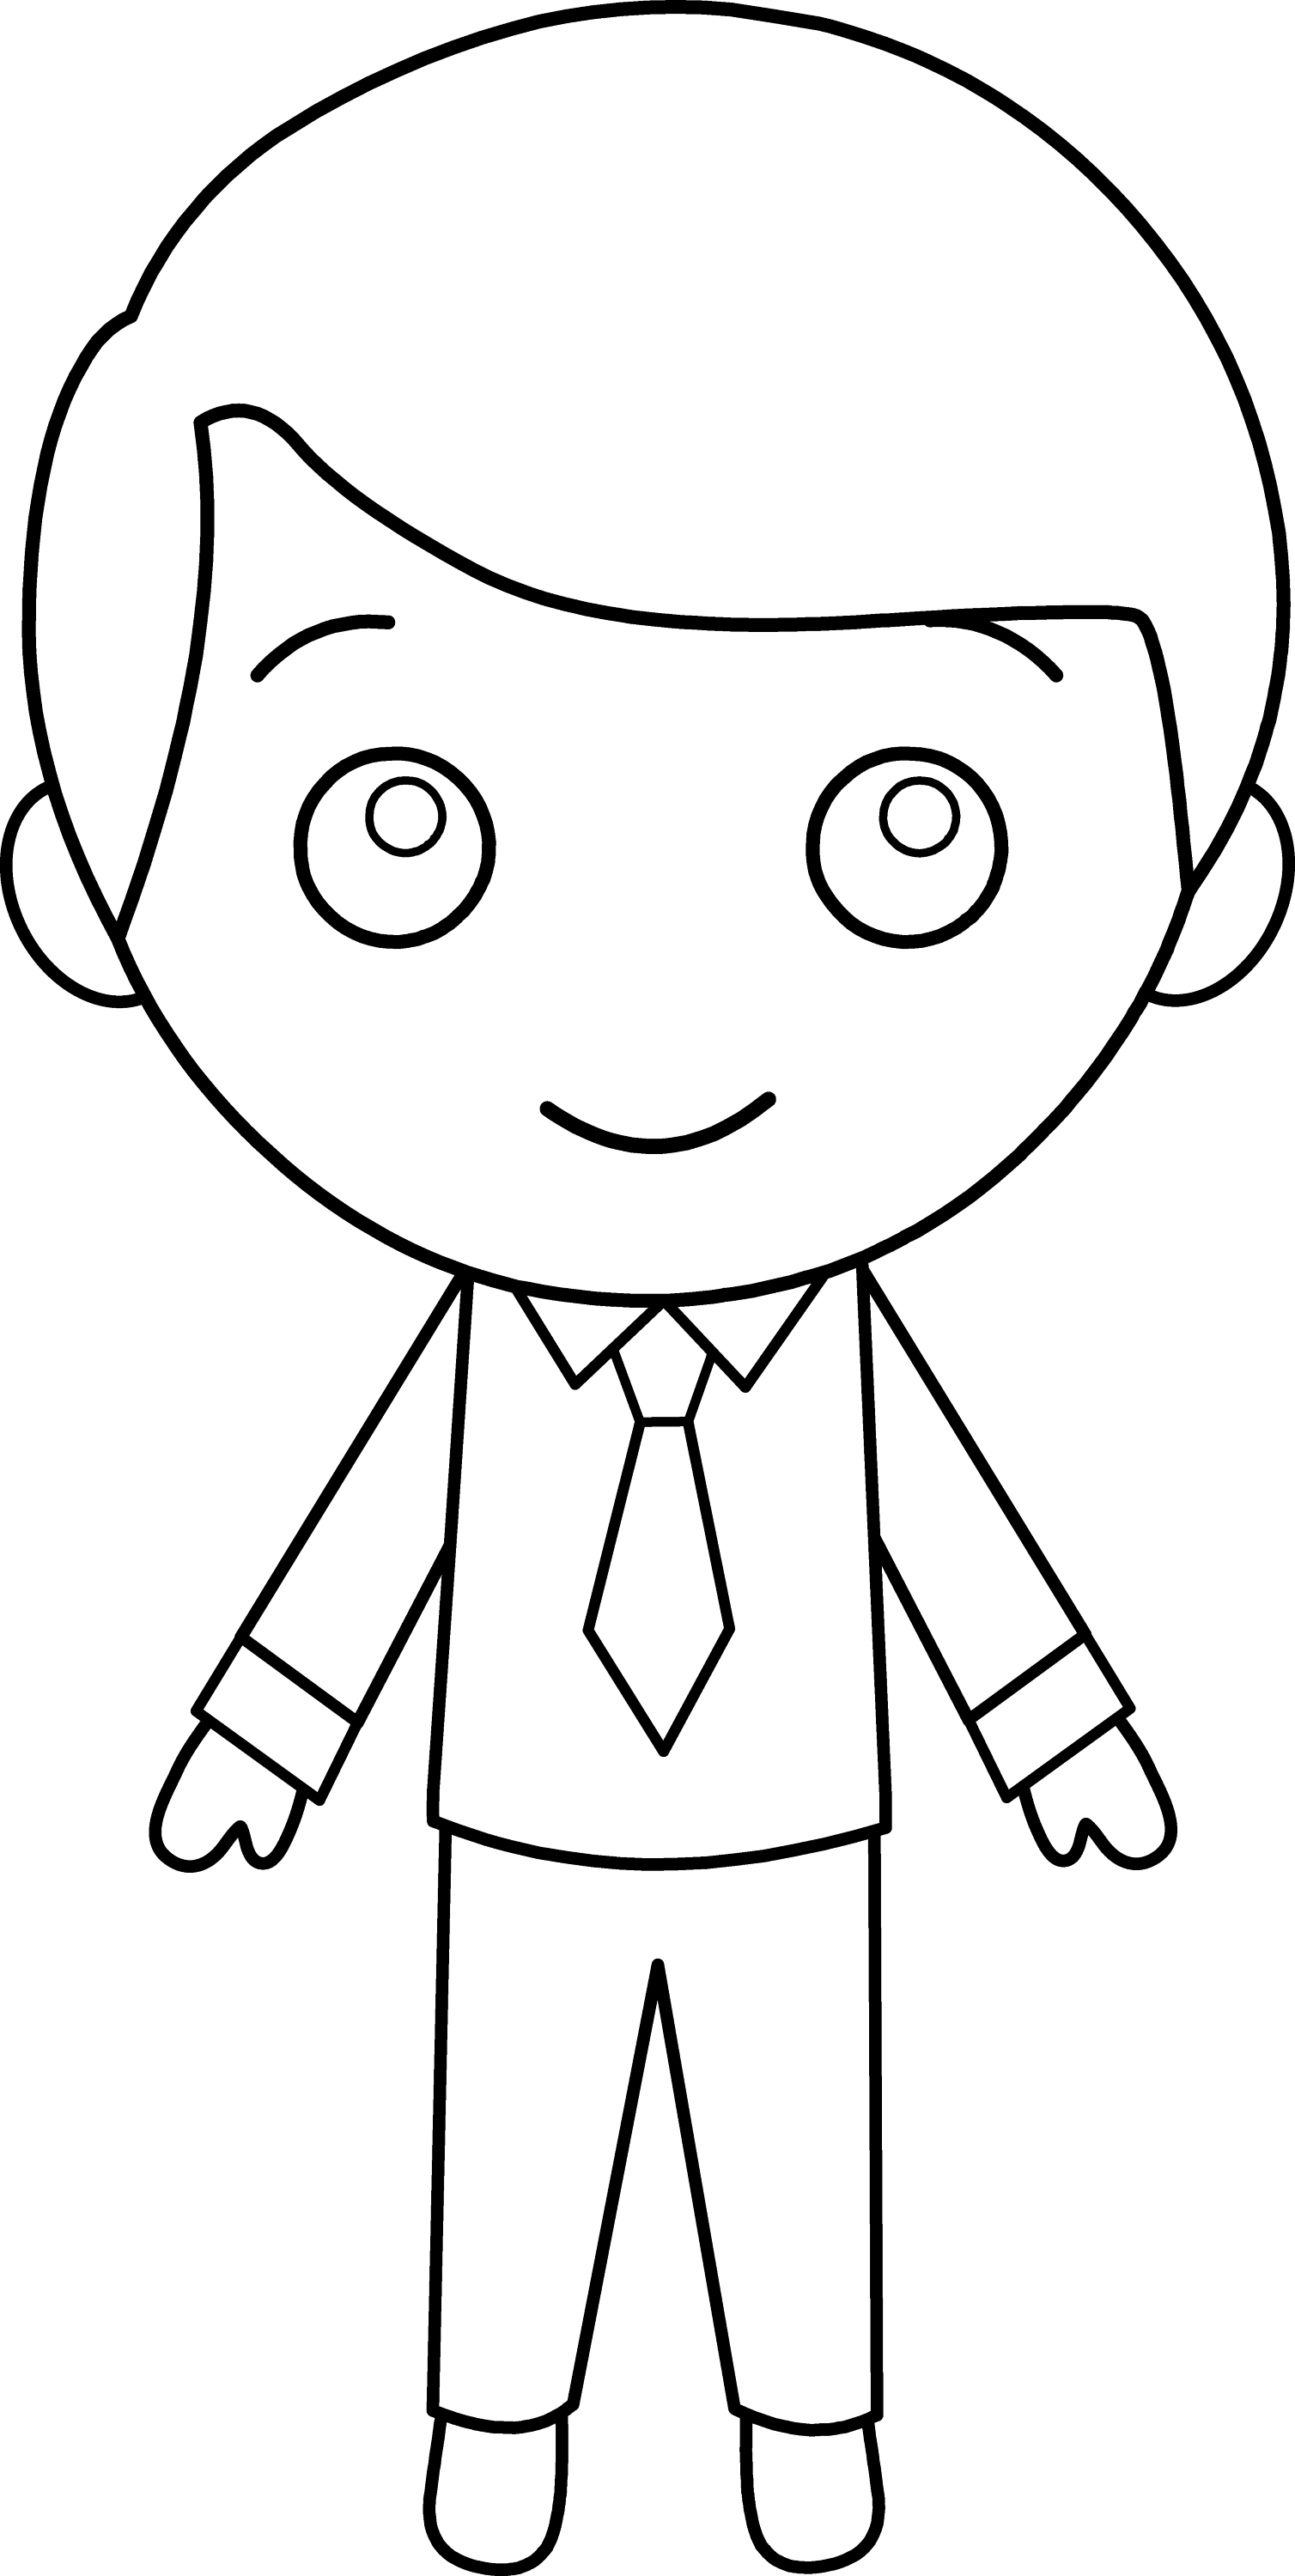 Little Guy In Suit Line Art